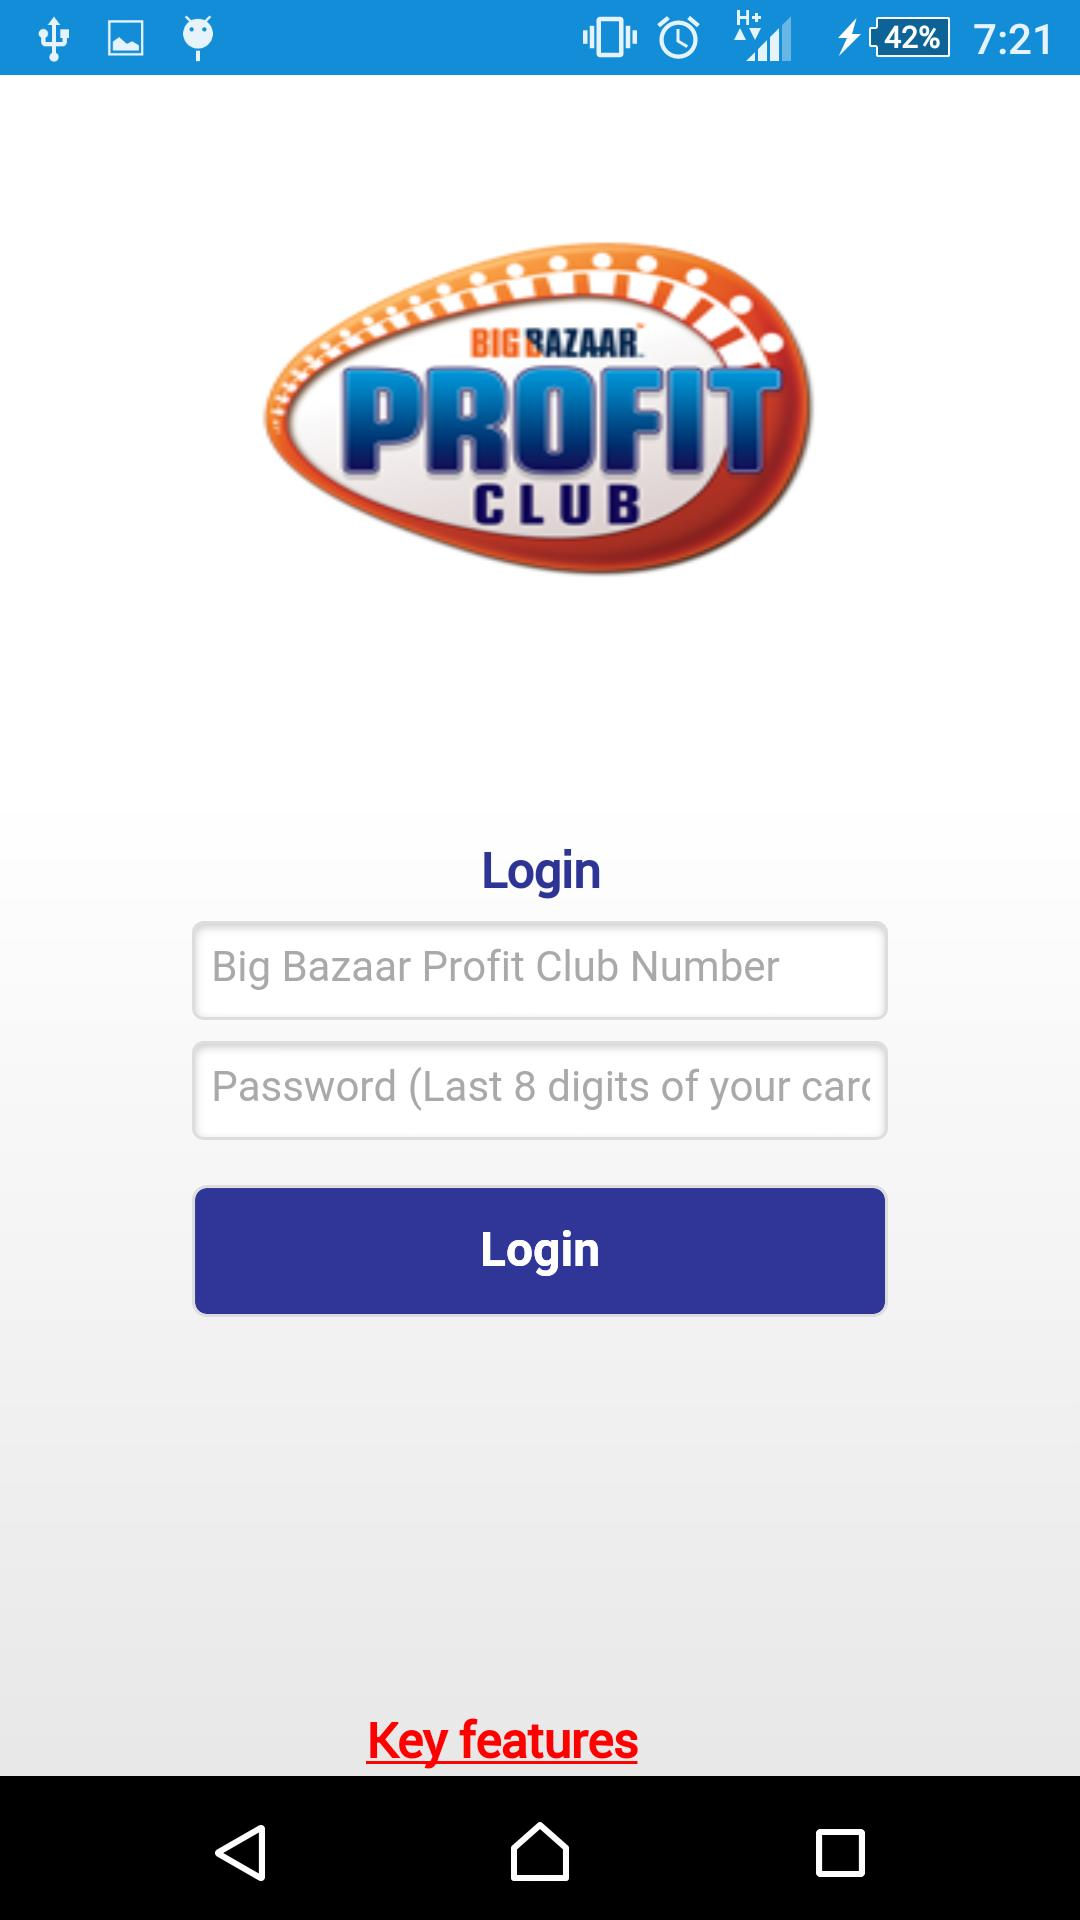 Big Bazaar Profit Club for Android - APK Download